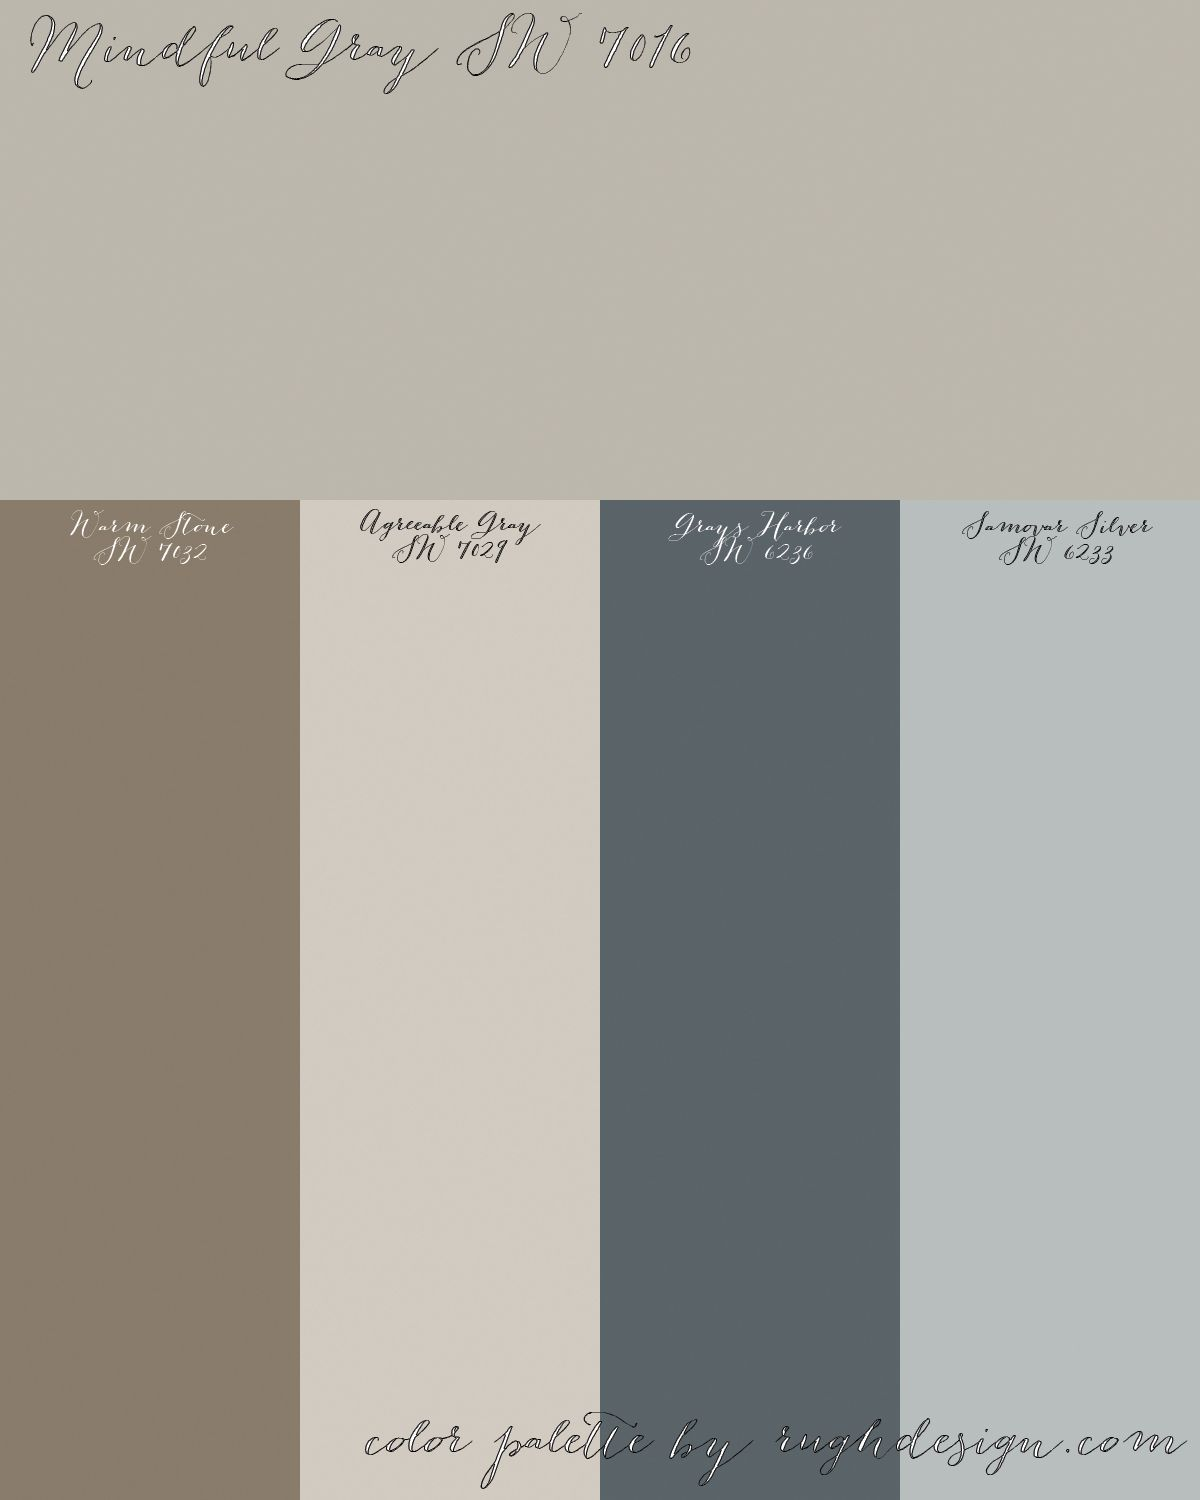 Mindful Gray Paint In Living Room: Mindful Gray SW 7016 With A Complementary Color Scheme